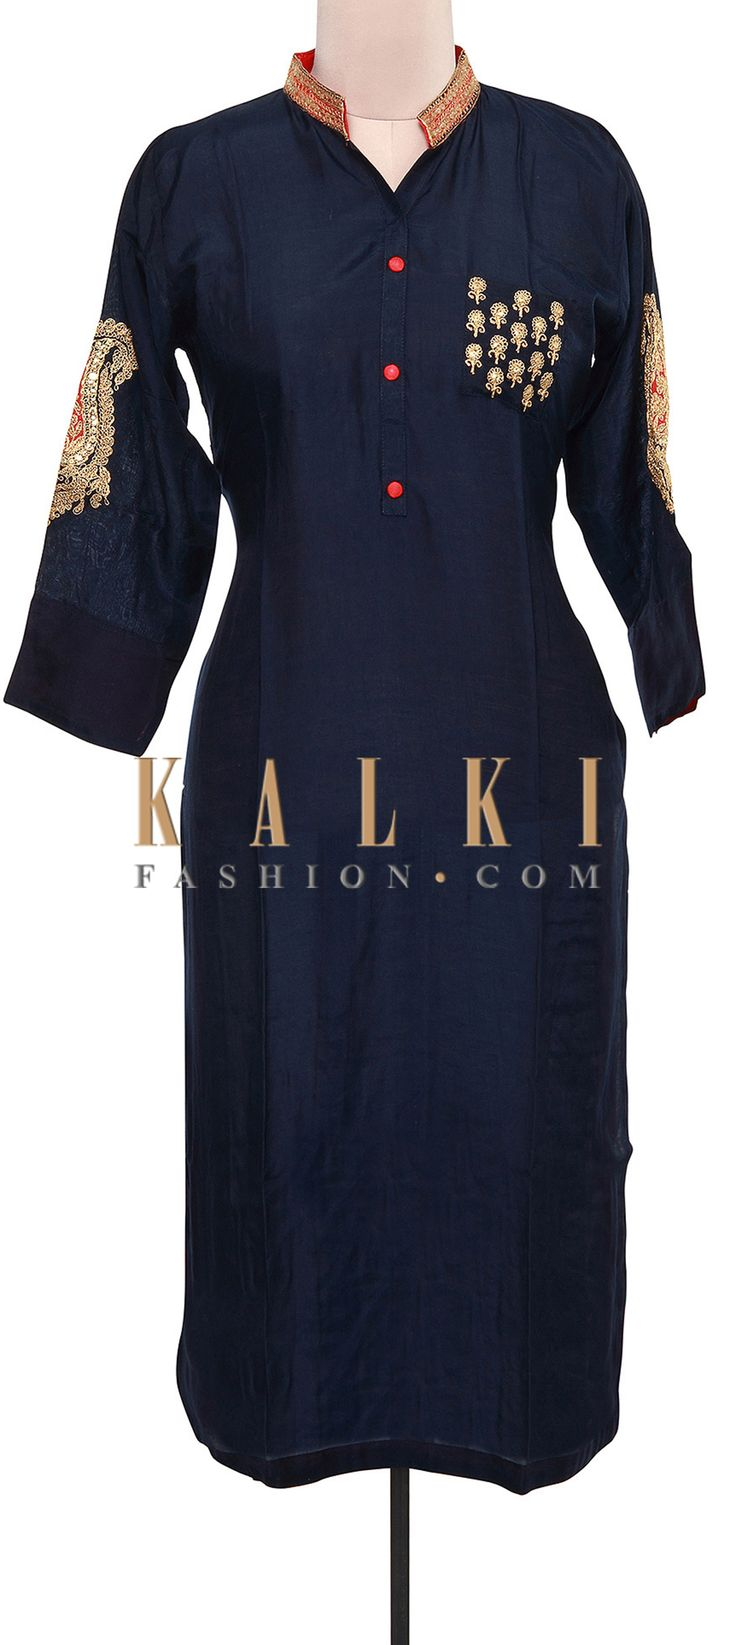 Buy Online from the link below. We ship worldwide (Free Shipping over US$100). Product SKU - 309240.Product Link - http://www.kalkifashion.com/navy-blue-kurti-adorn-in-sleeve-embroidery-only-on-kalki.html